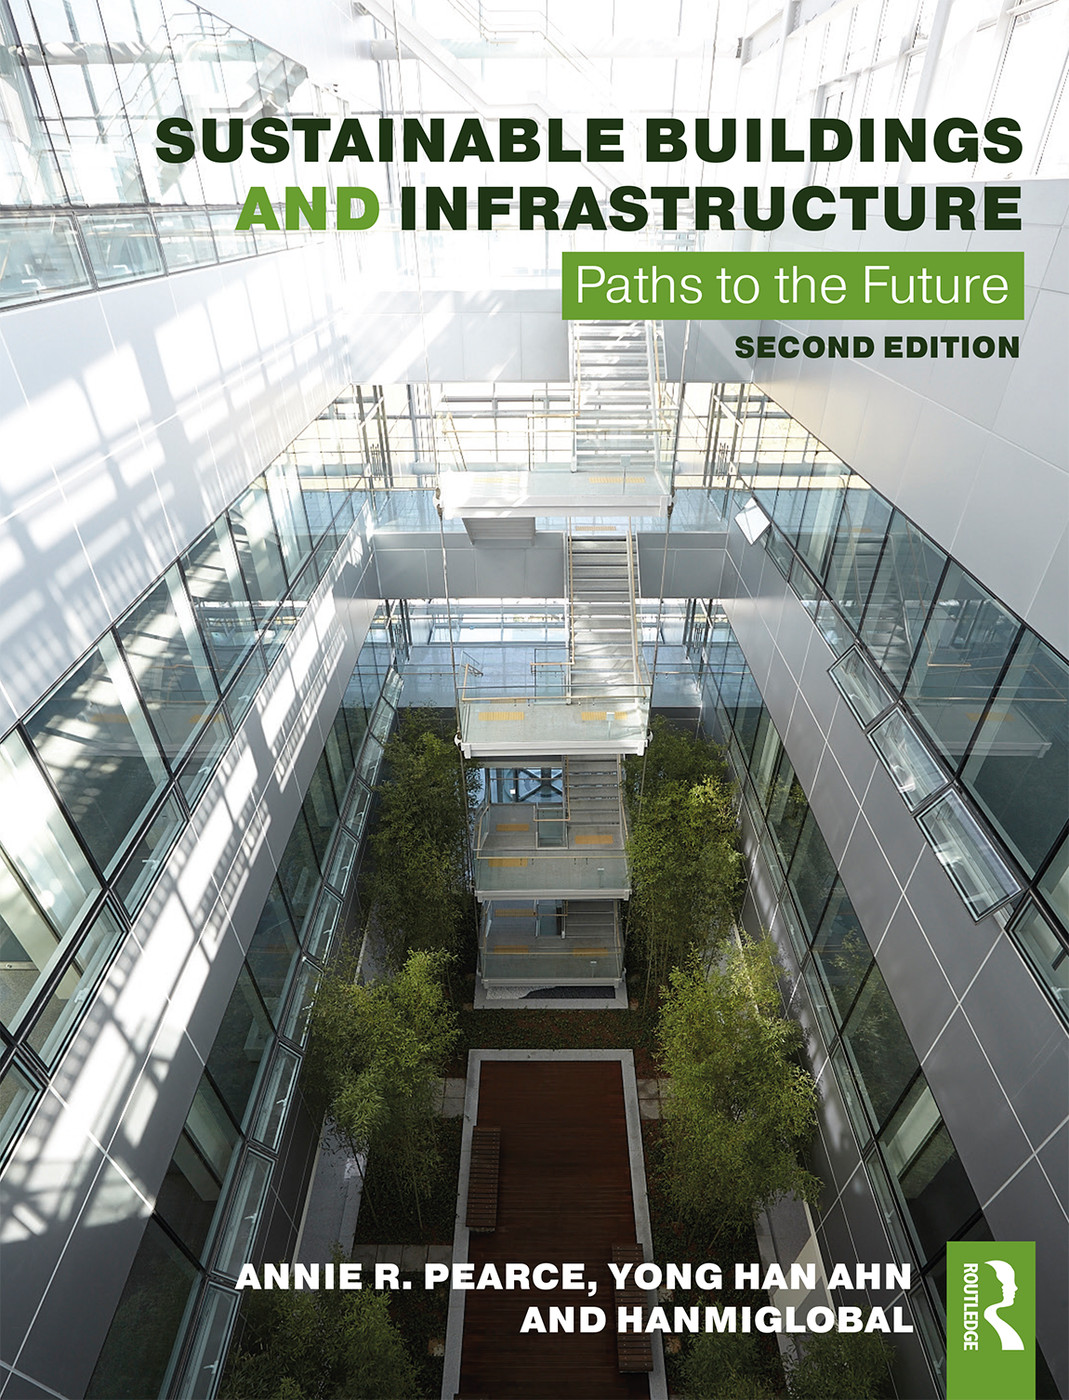 The cover of the Sustainable Buildings and Infrastructure.